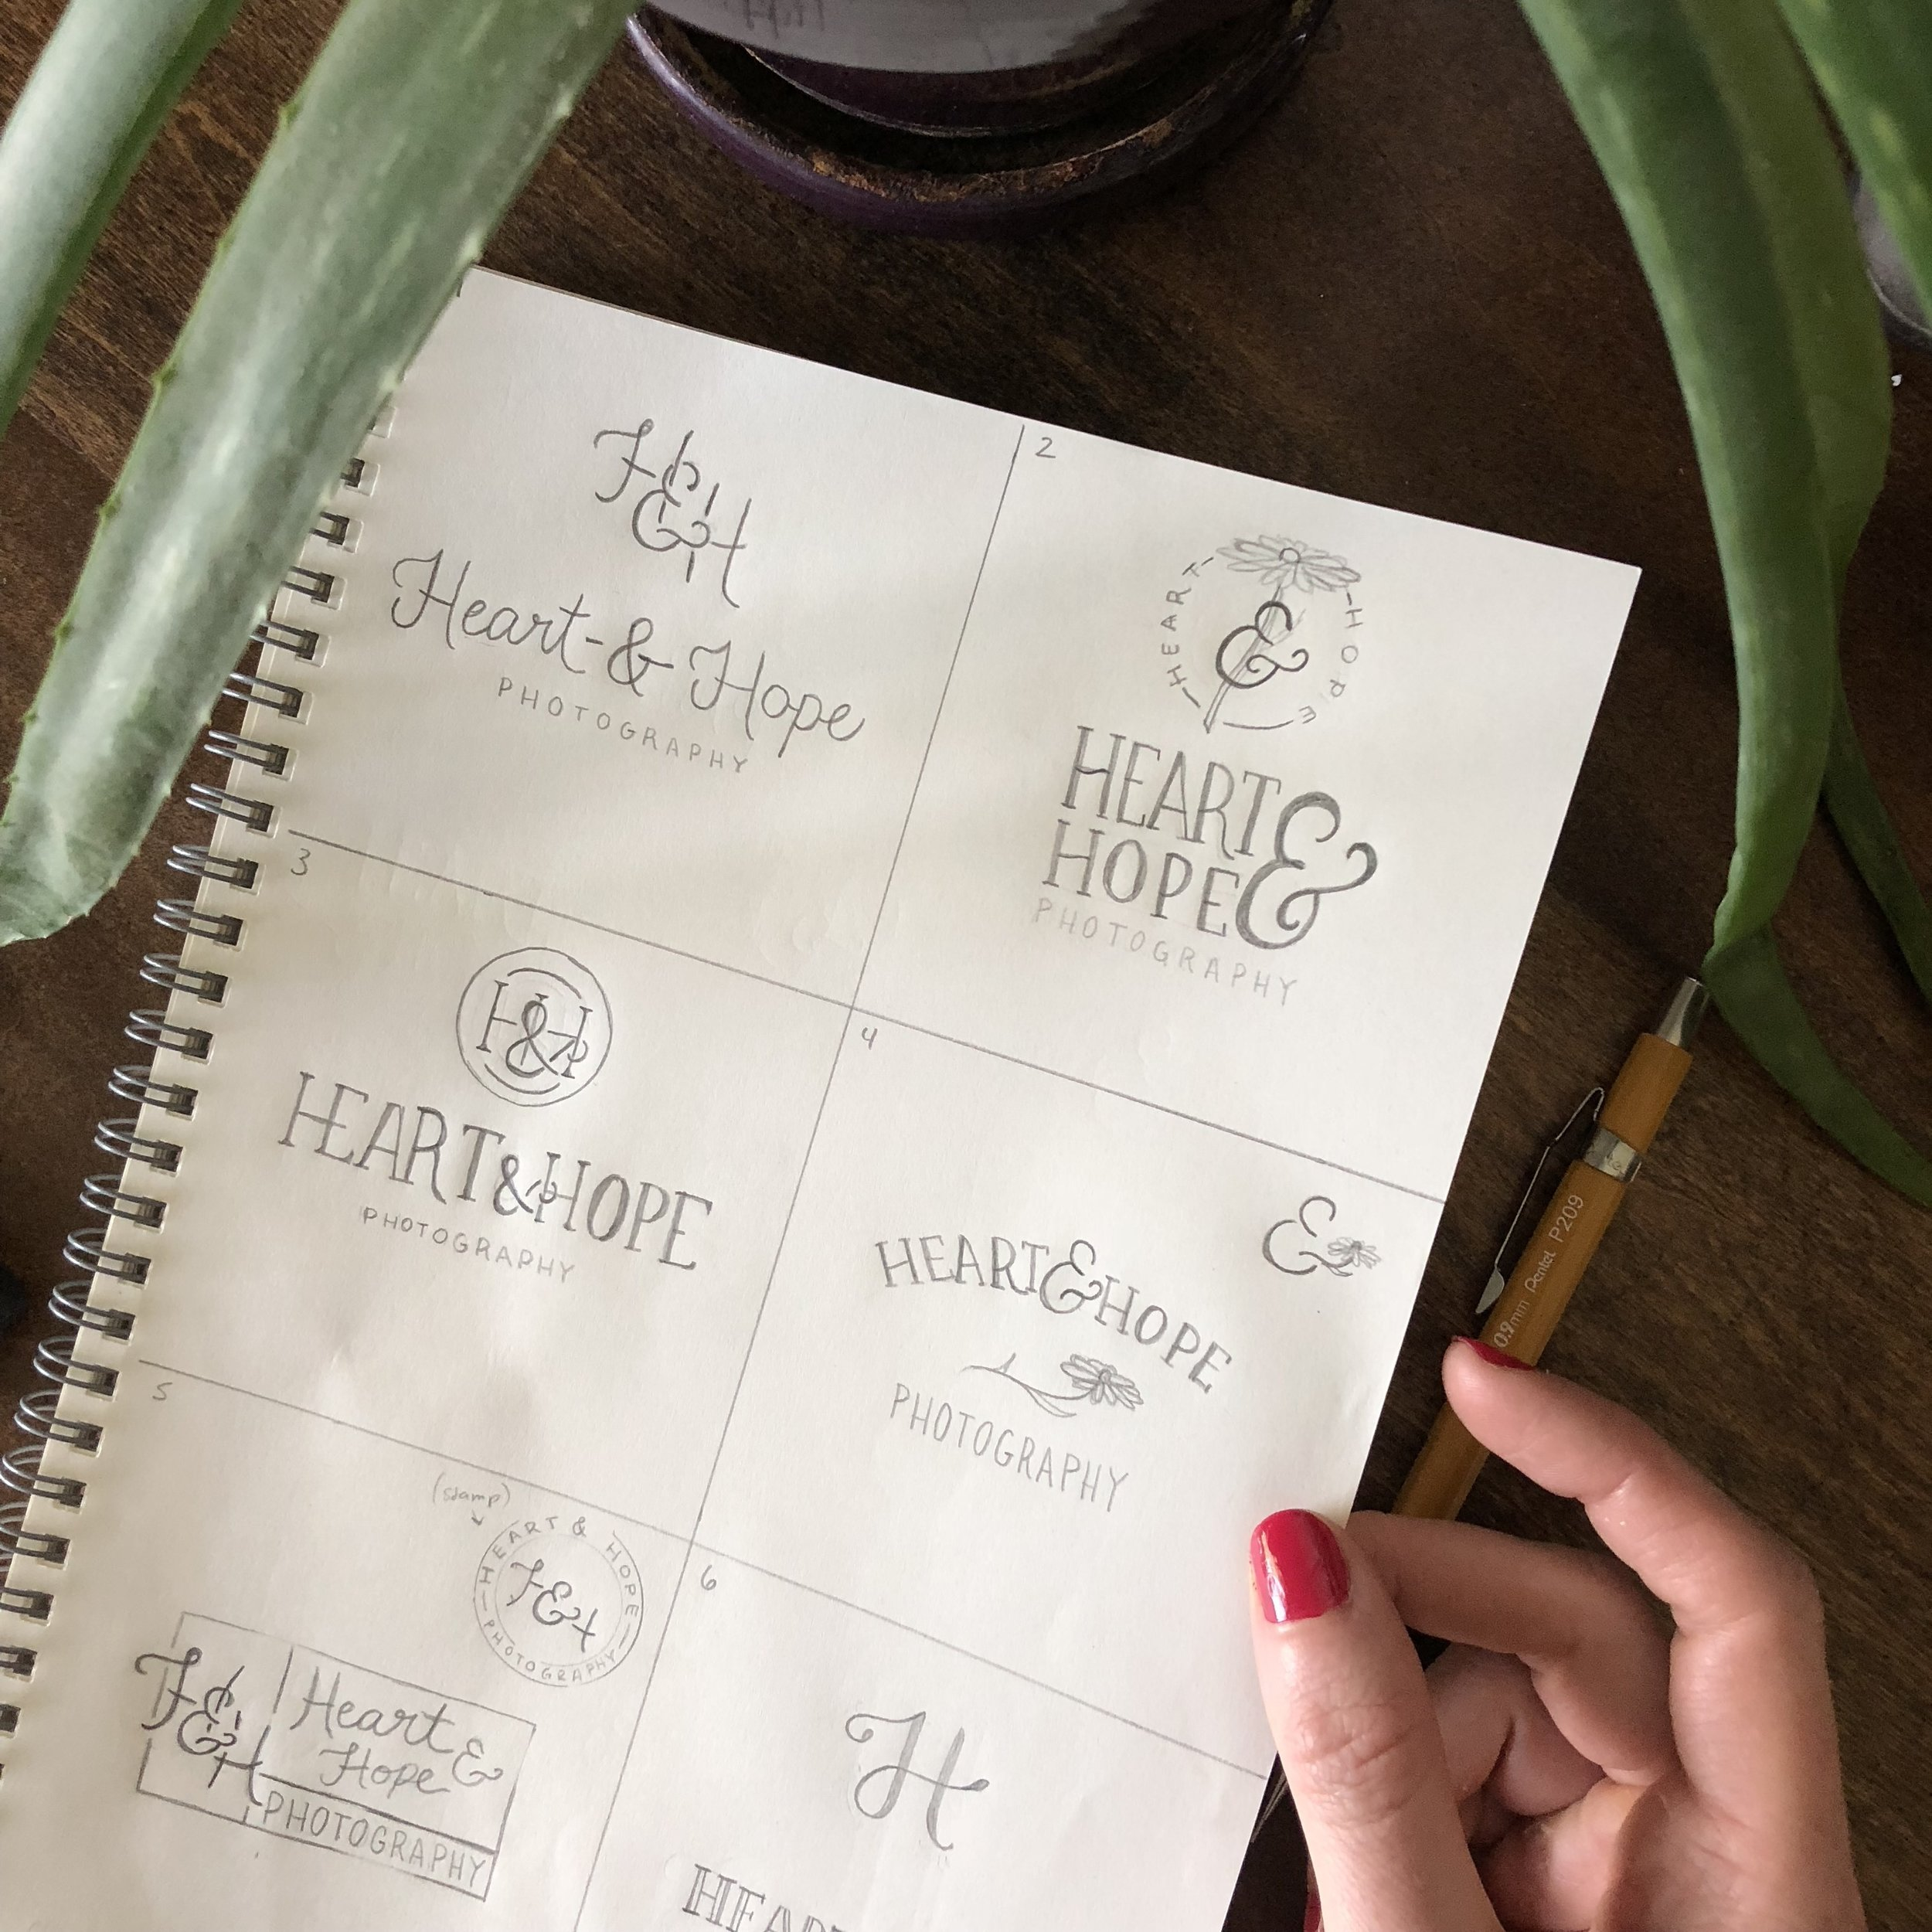 Heart and Hope Photography - Tulsa brand designer - logo sketches - hayley bigham designs - photography brand design